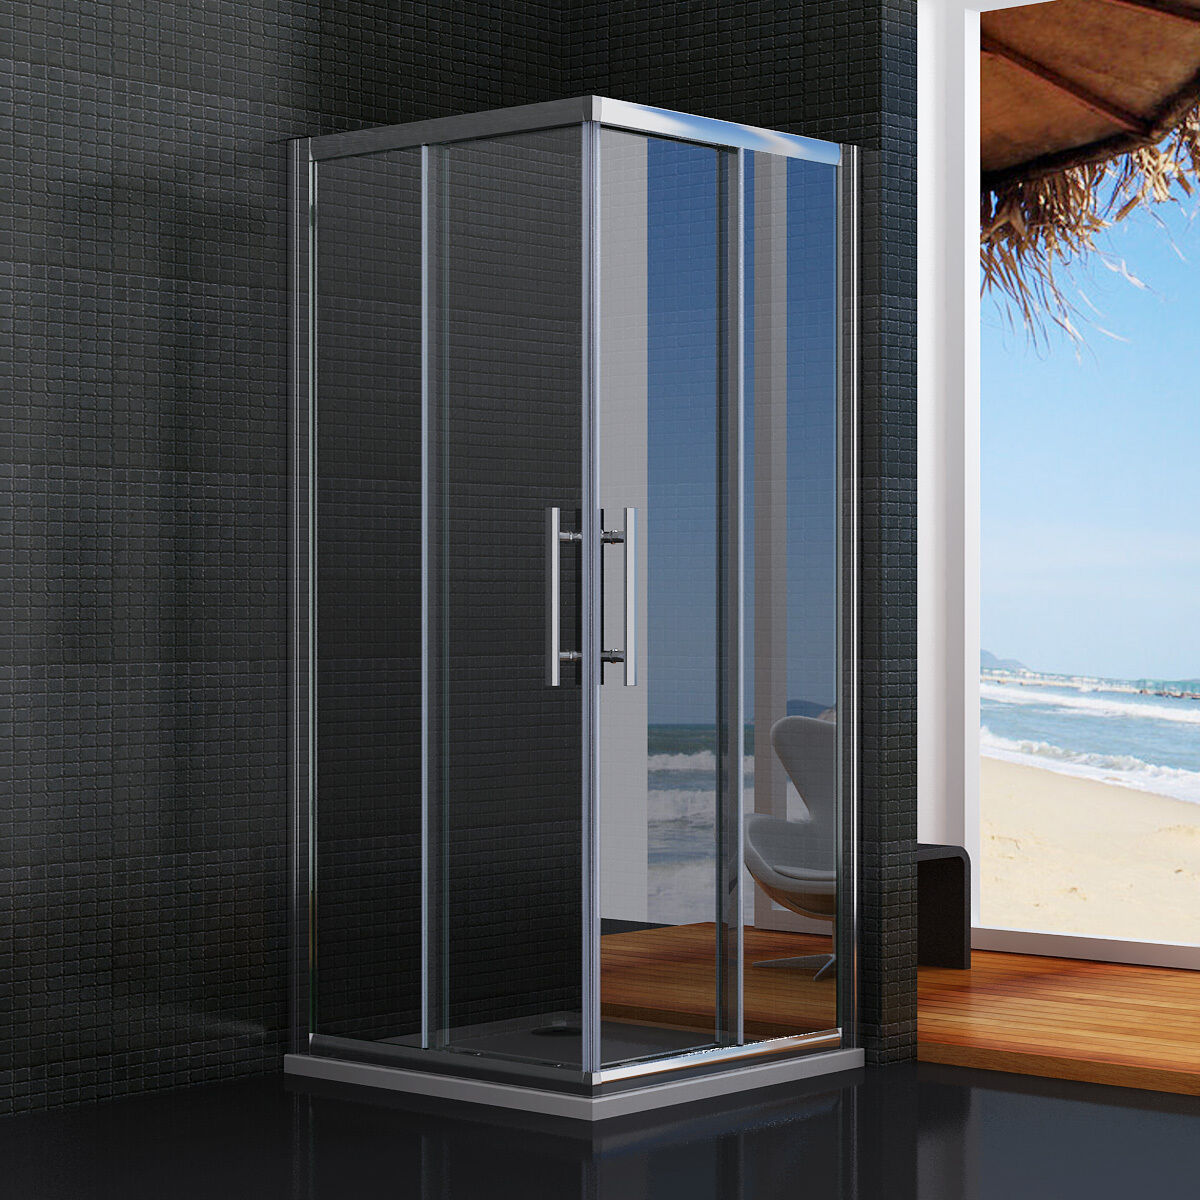 Dusche Schiebet?r Eckeinstieg : Sliding Corner Entry Shower Door